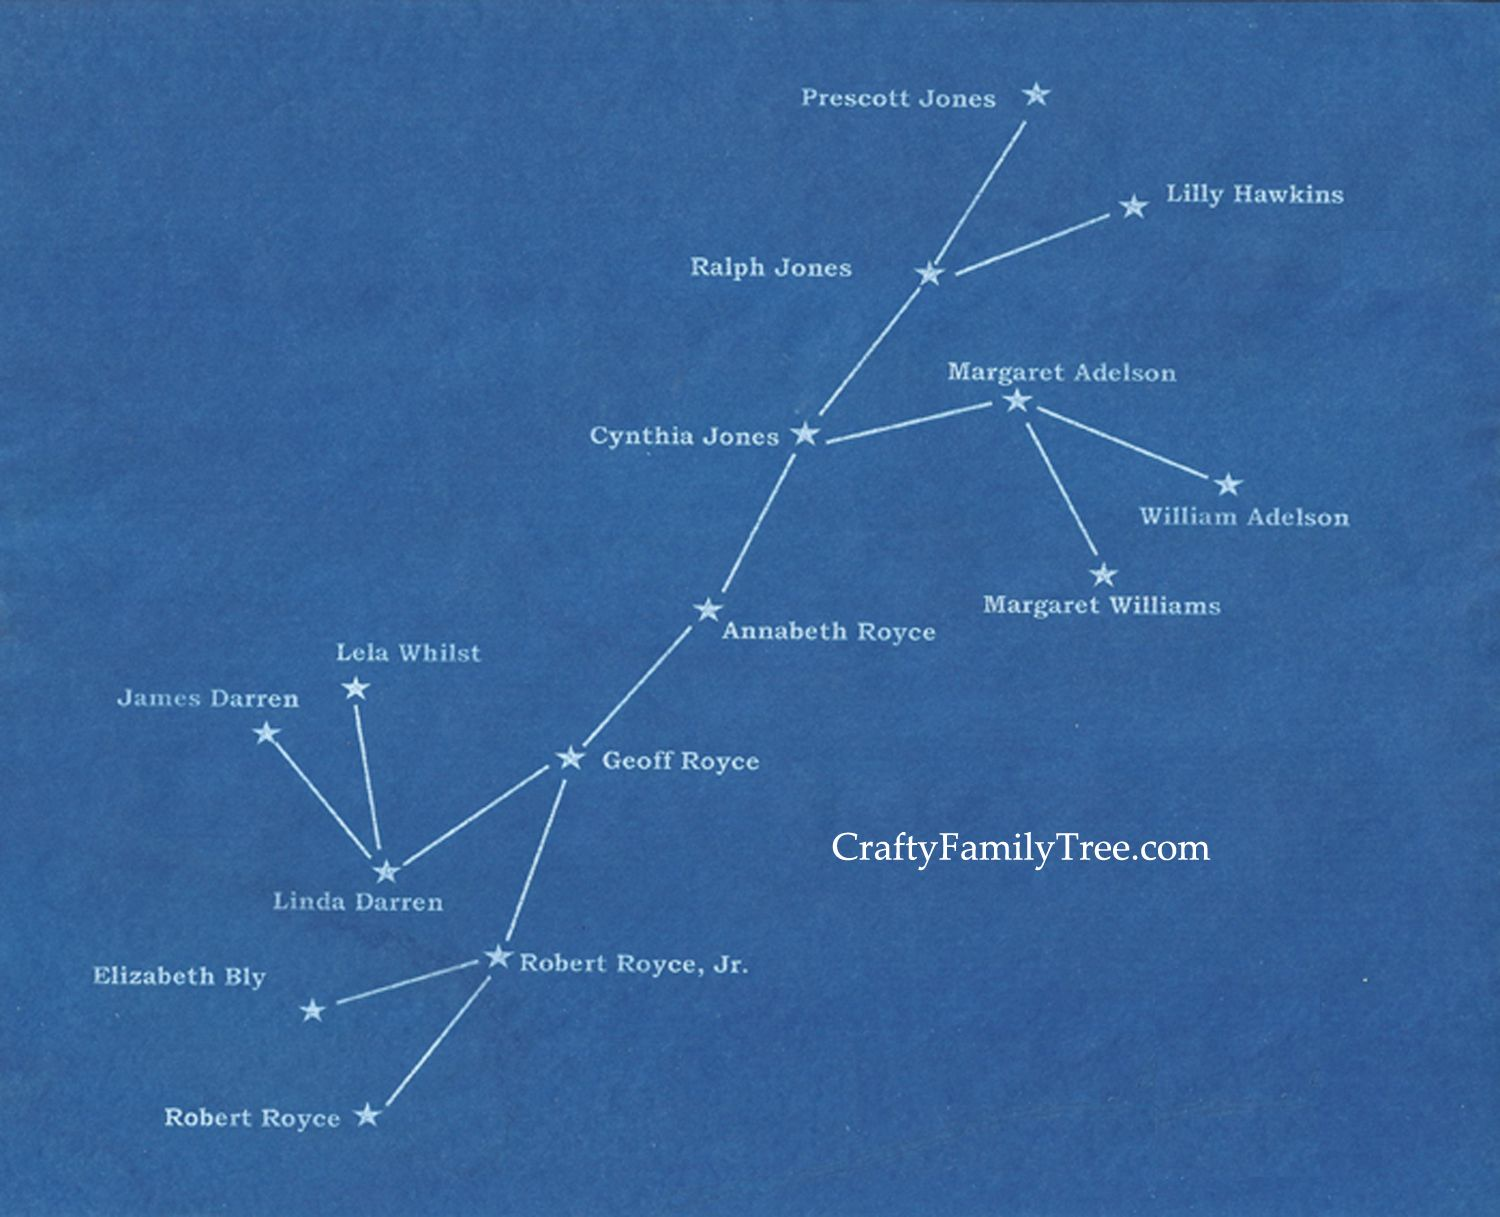 Family Tree Printout That Looks Like A Constellation Star Chart